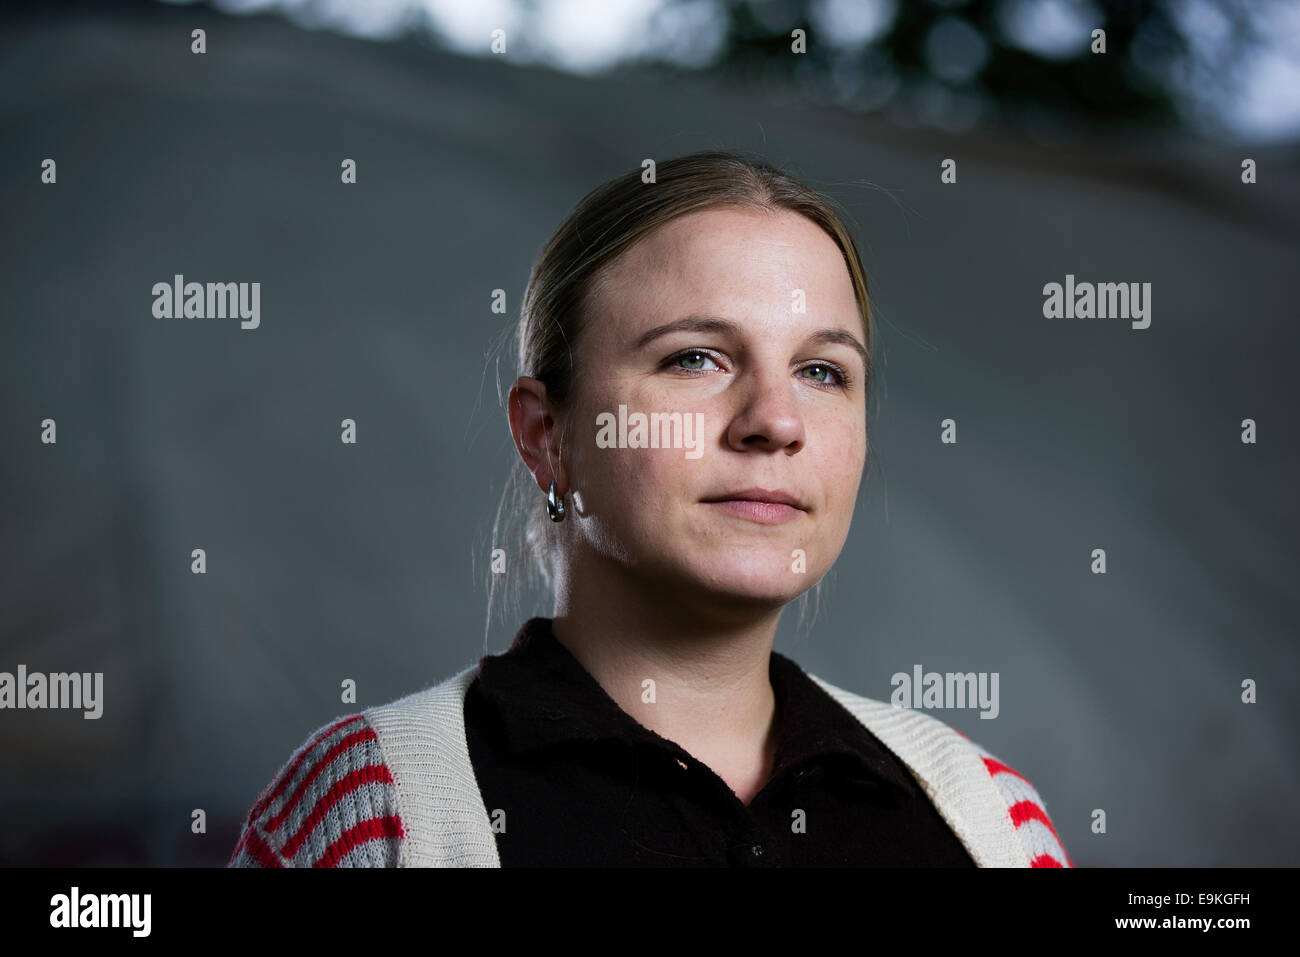 Author and journalist Erin Lange appears at the Edinburgh International Book Festival. Stock Photo